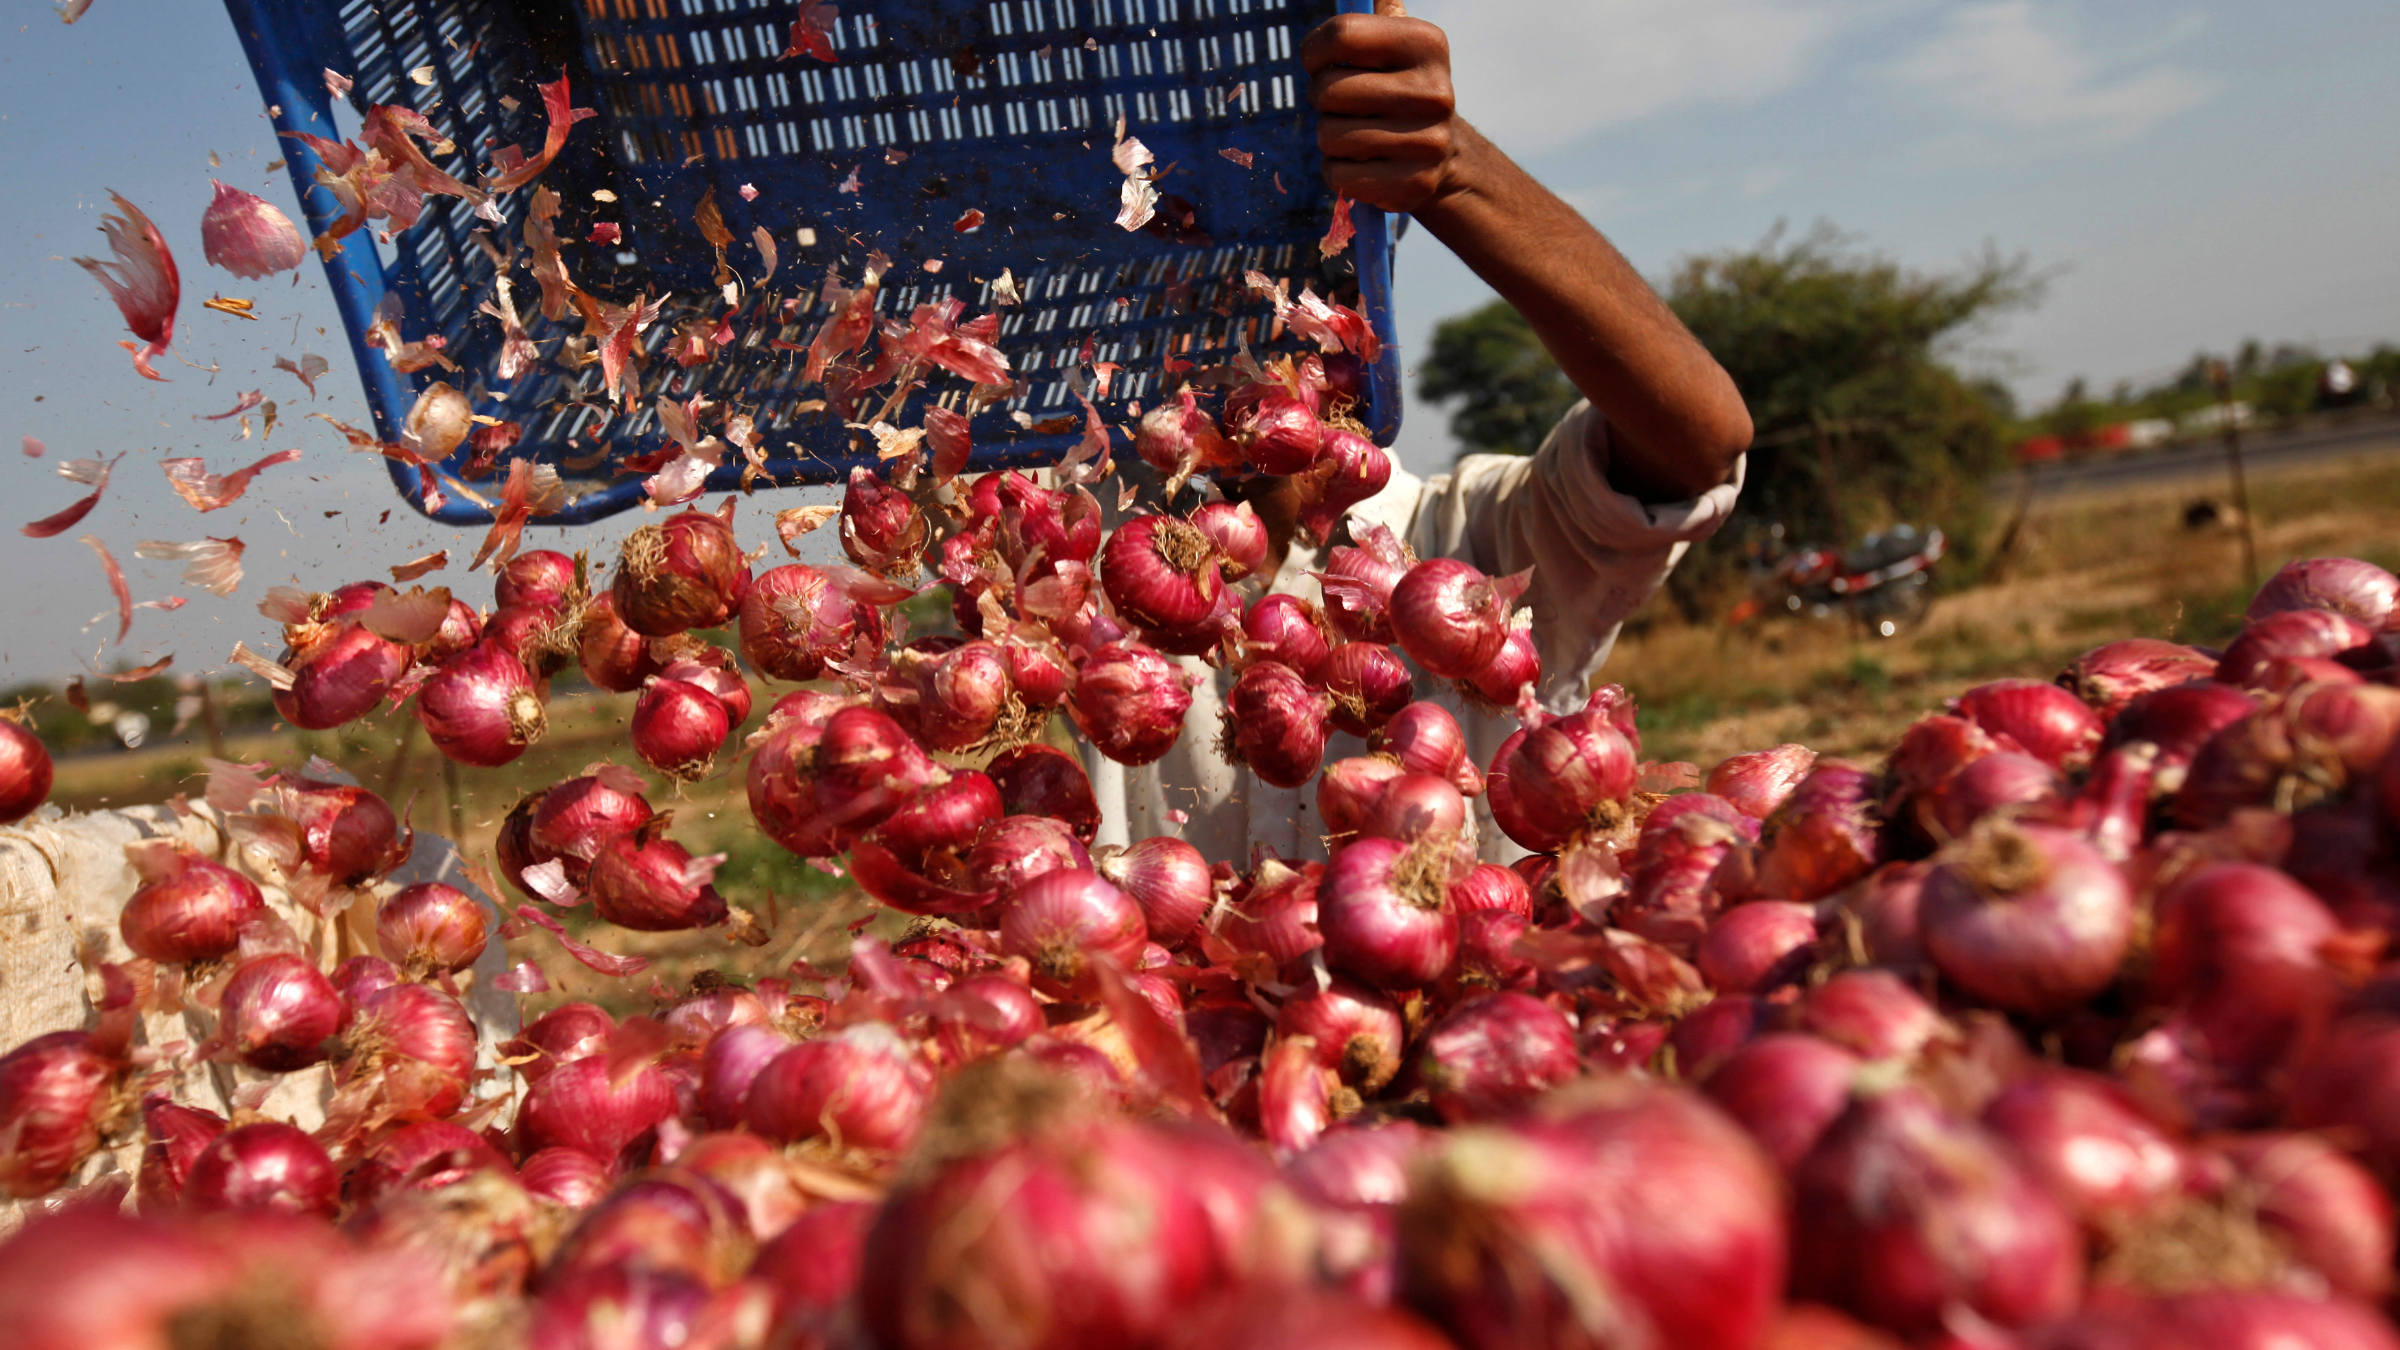 Onions could be India's next political hot potato.